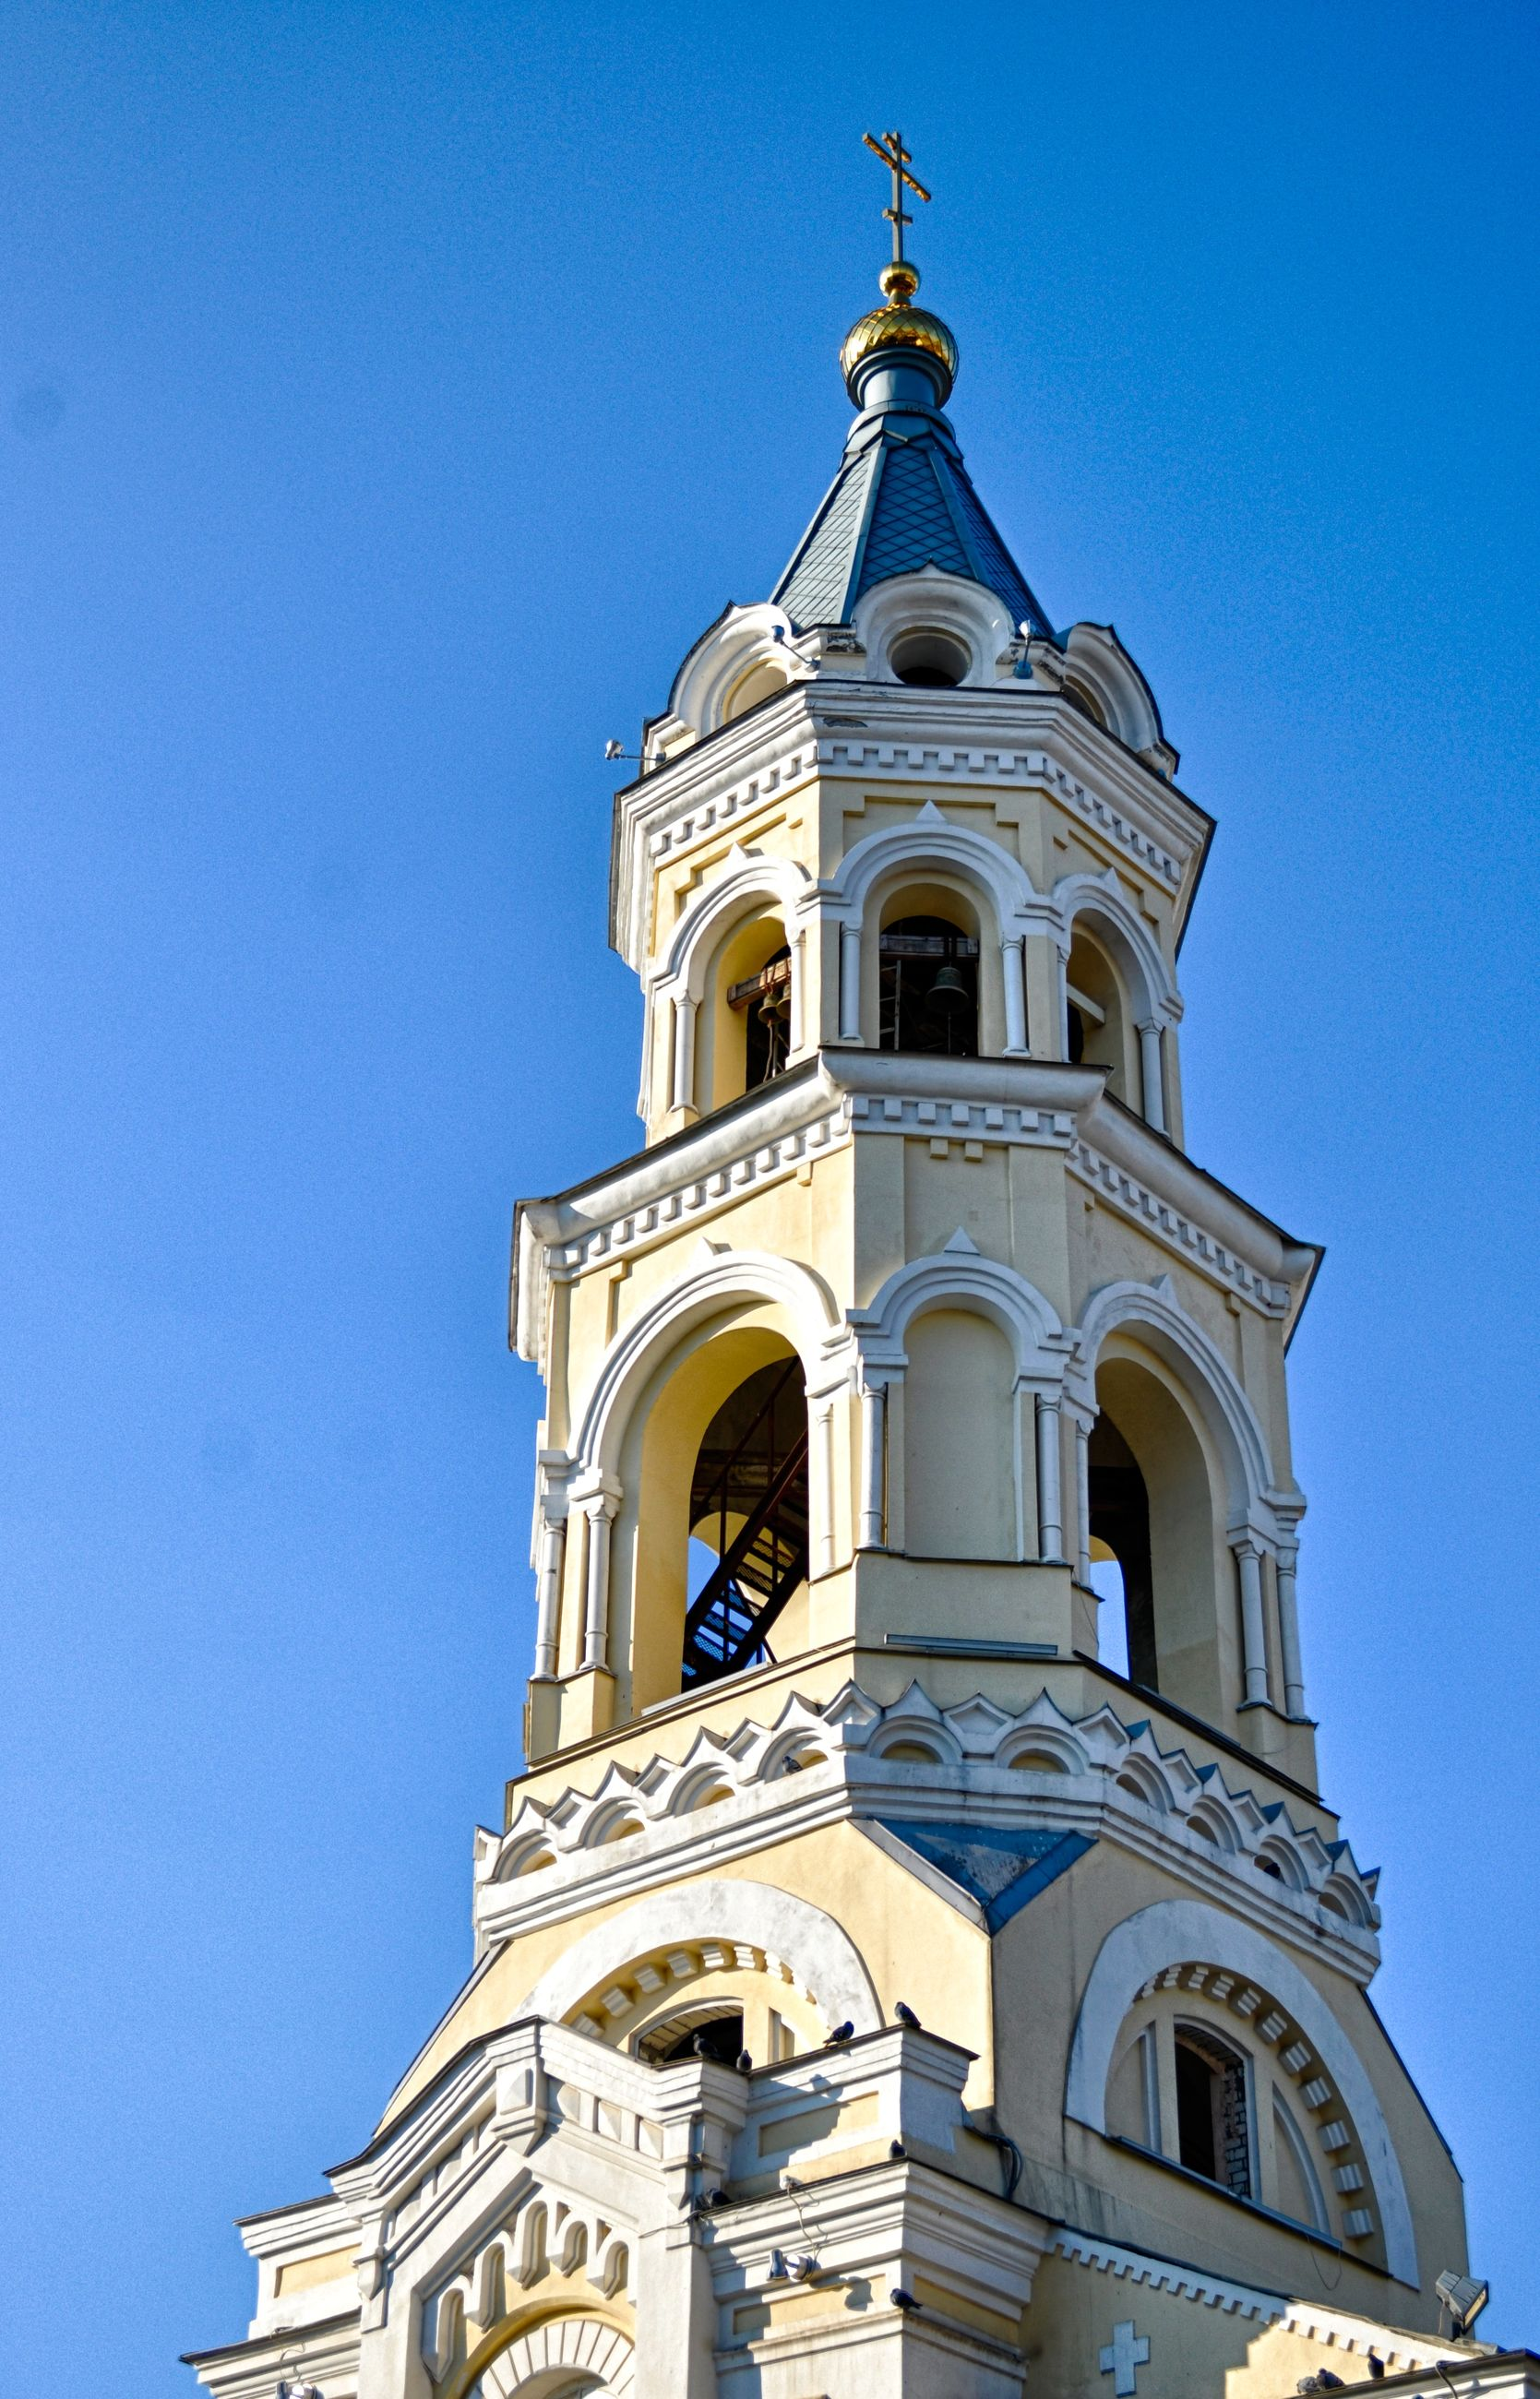 religion, architecture, building exterior, place of worship, church, low angle view, built structure, spirituality, clear sky, blue, cathedral, clock tower, high section, tower, cross, clock, day, bell tower